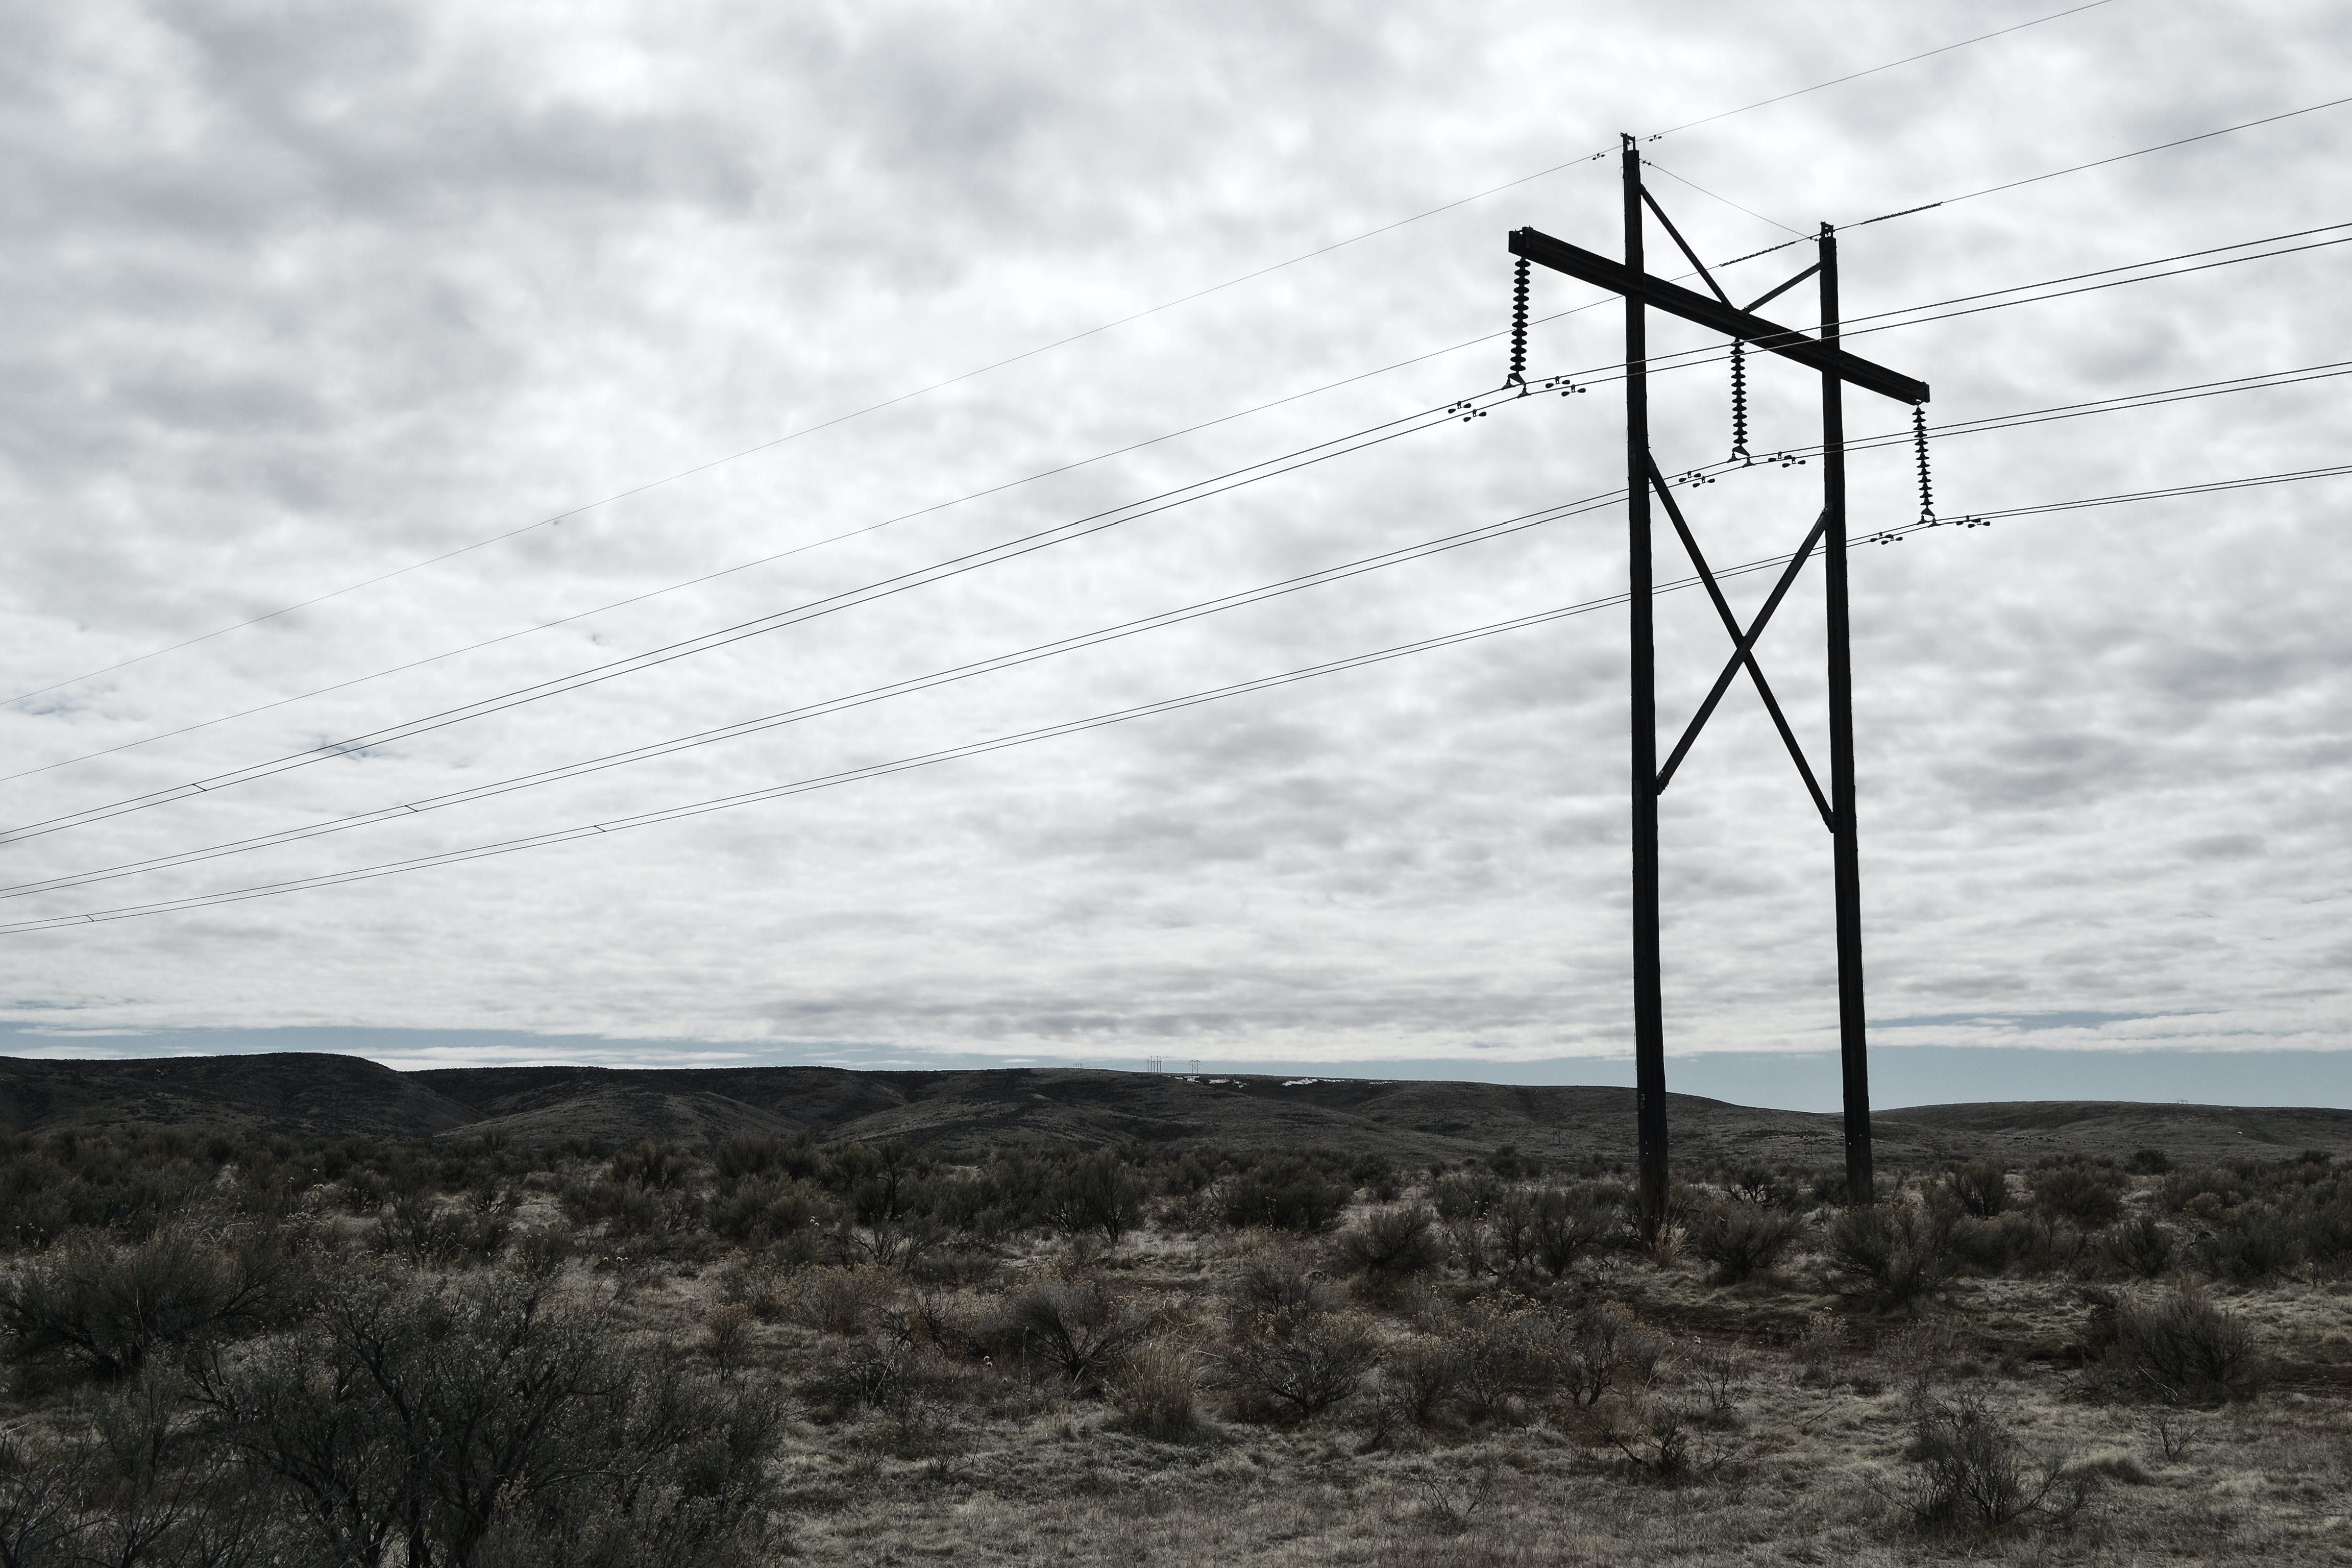 Photograph of Electrical Post on Cloudy Day